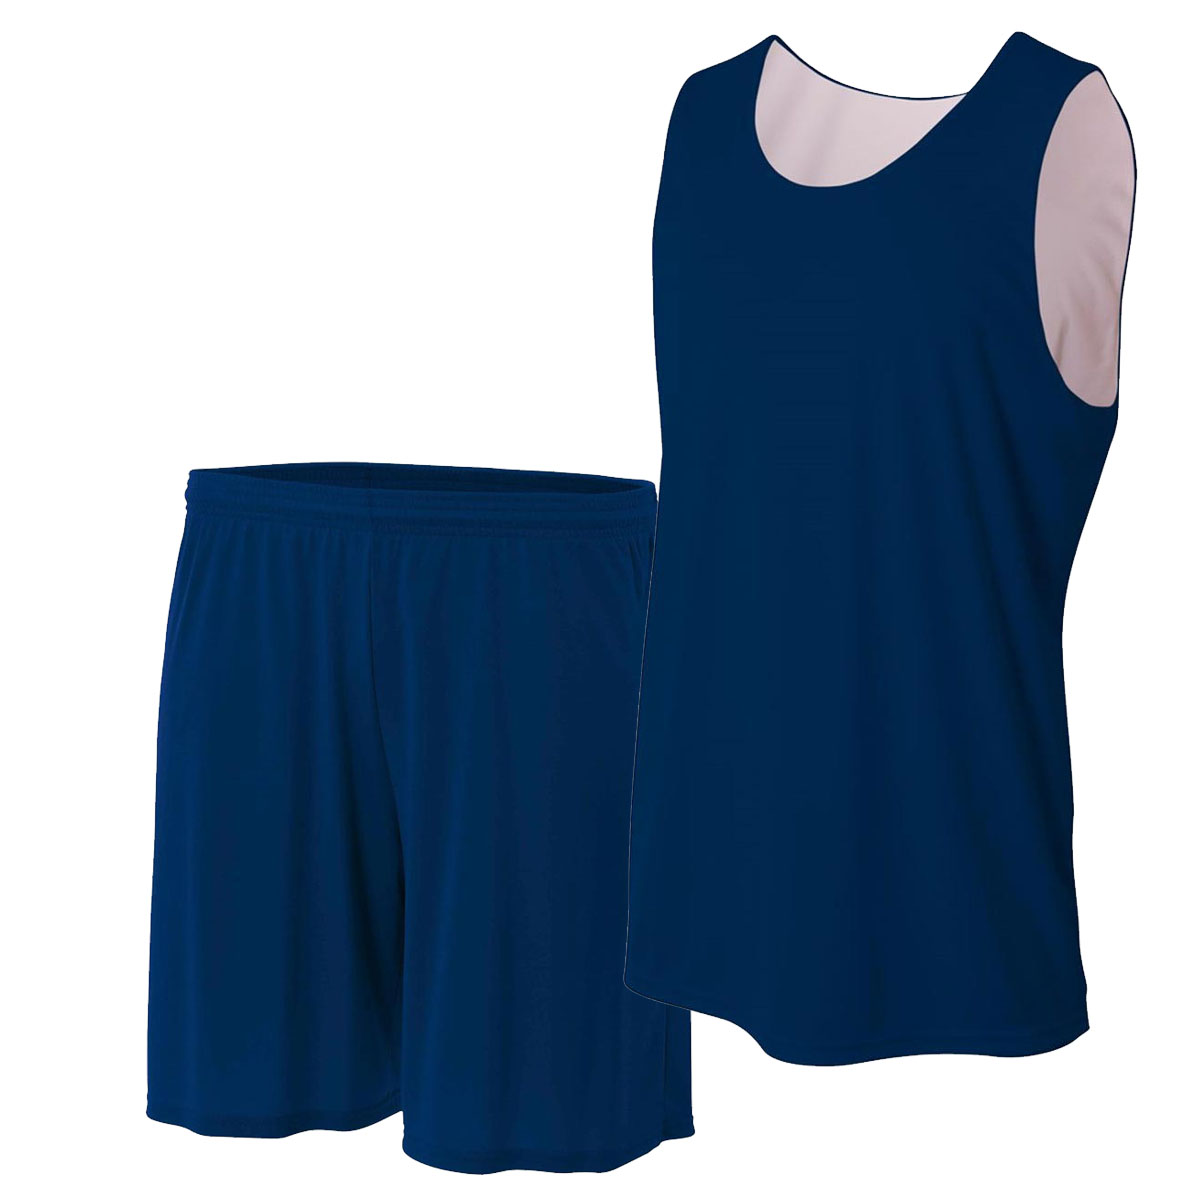 Reversible Basketball Uniforms Manufacturers in Saharanpur